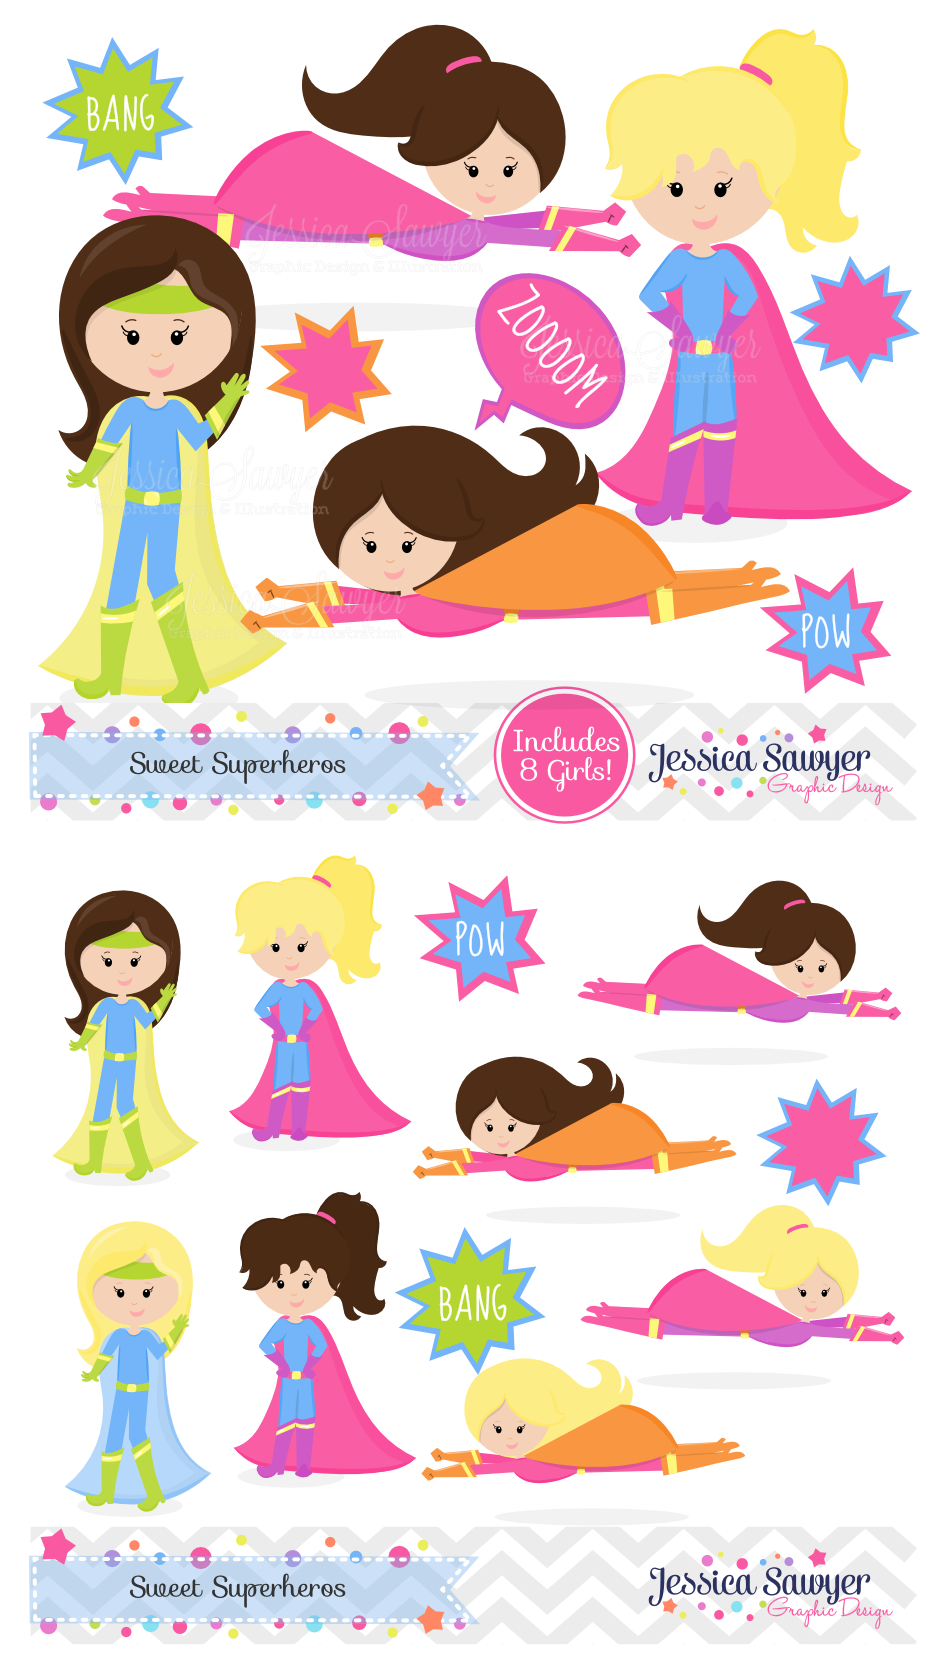 medium resolution of superhero clipart and vectors for a girls superhero party or products superhero clipart girl